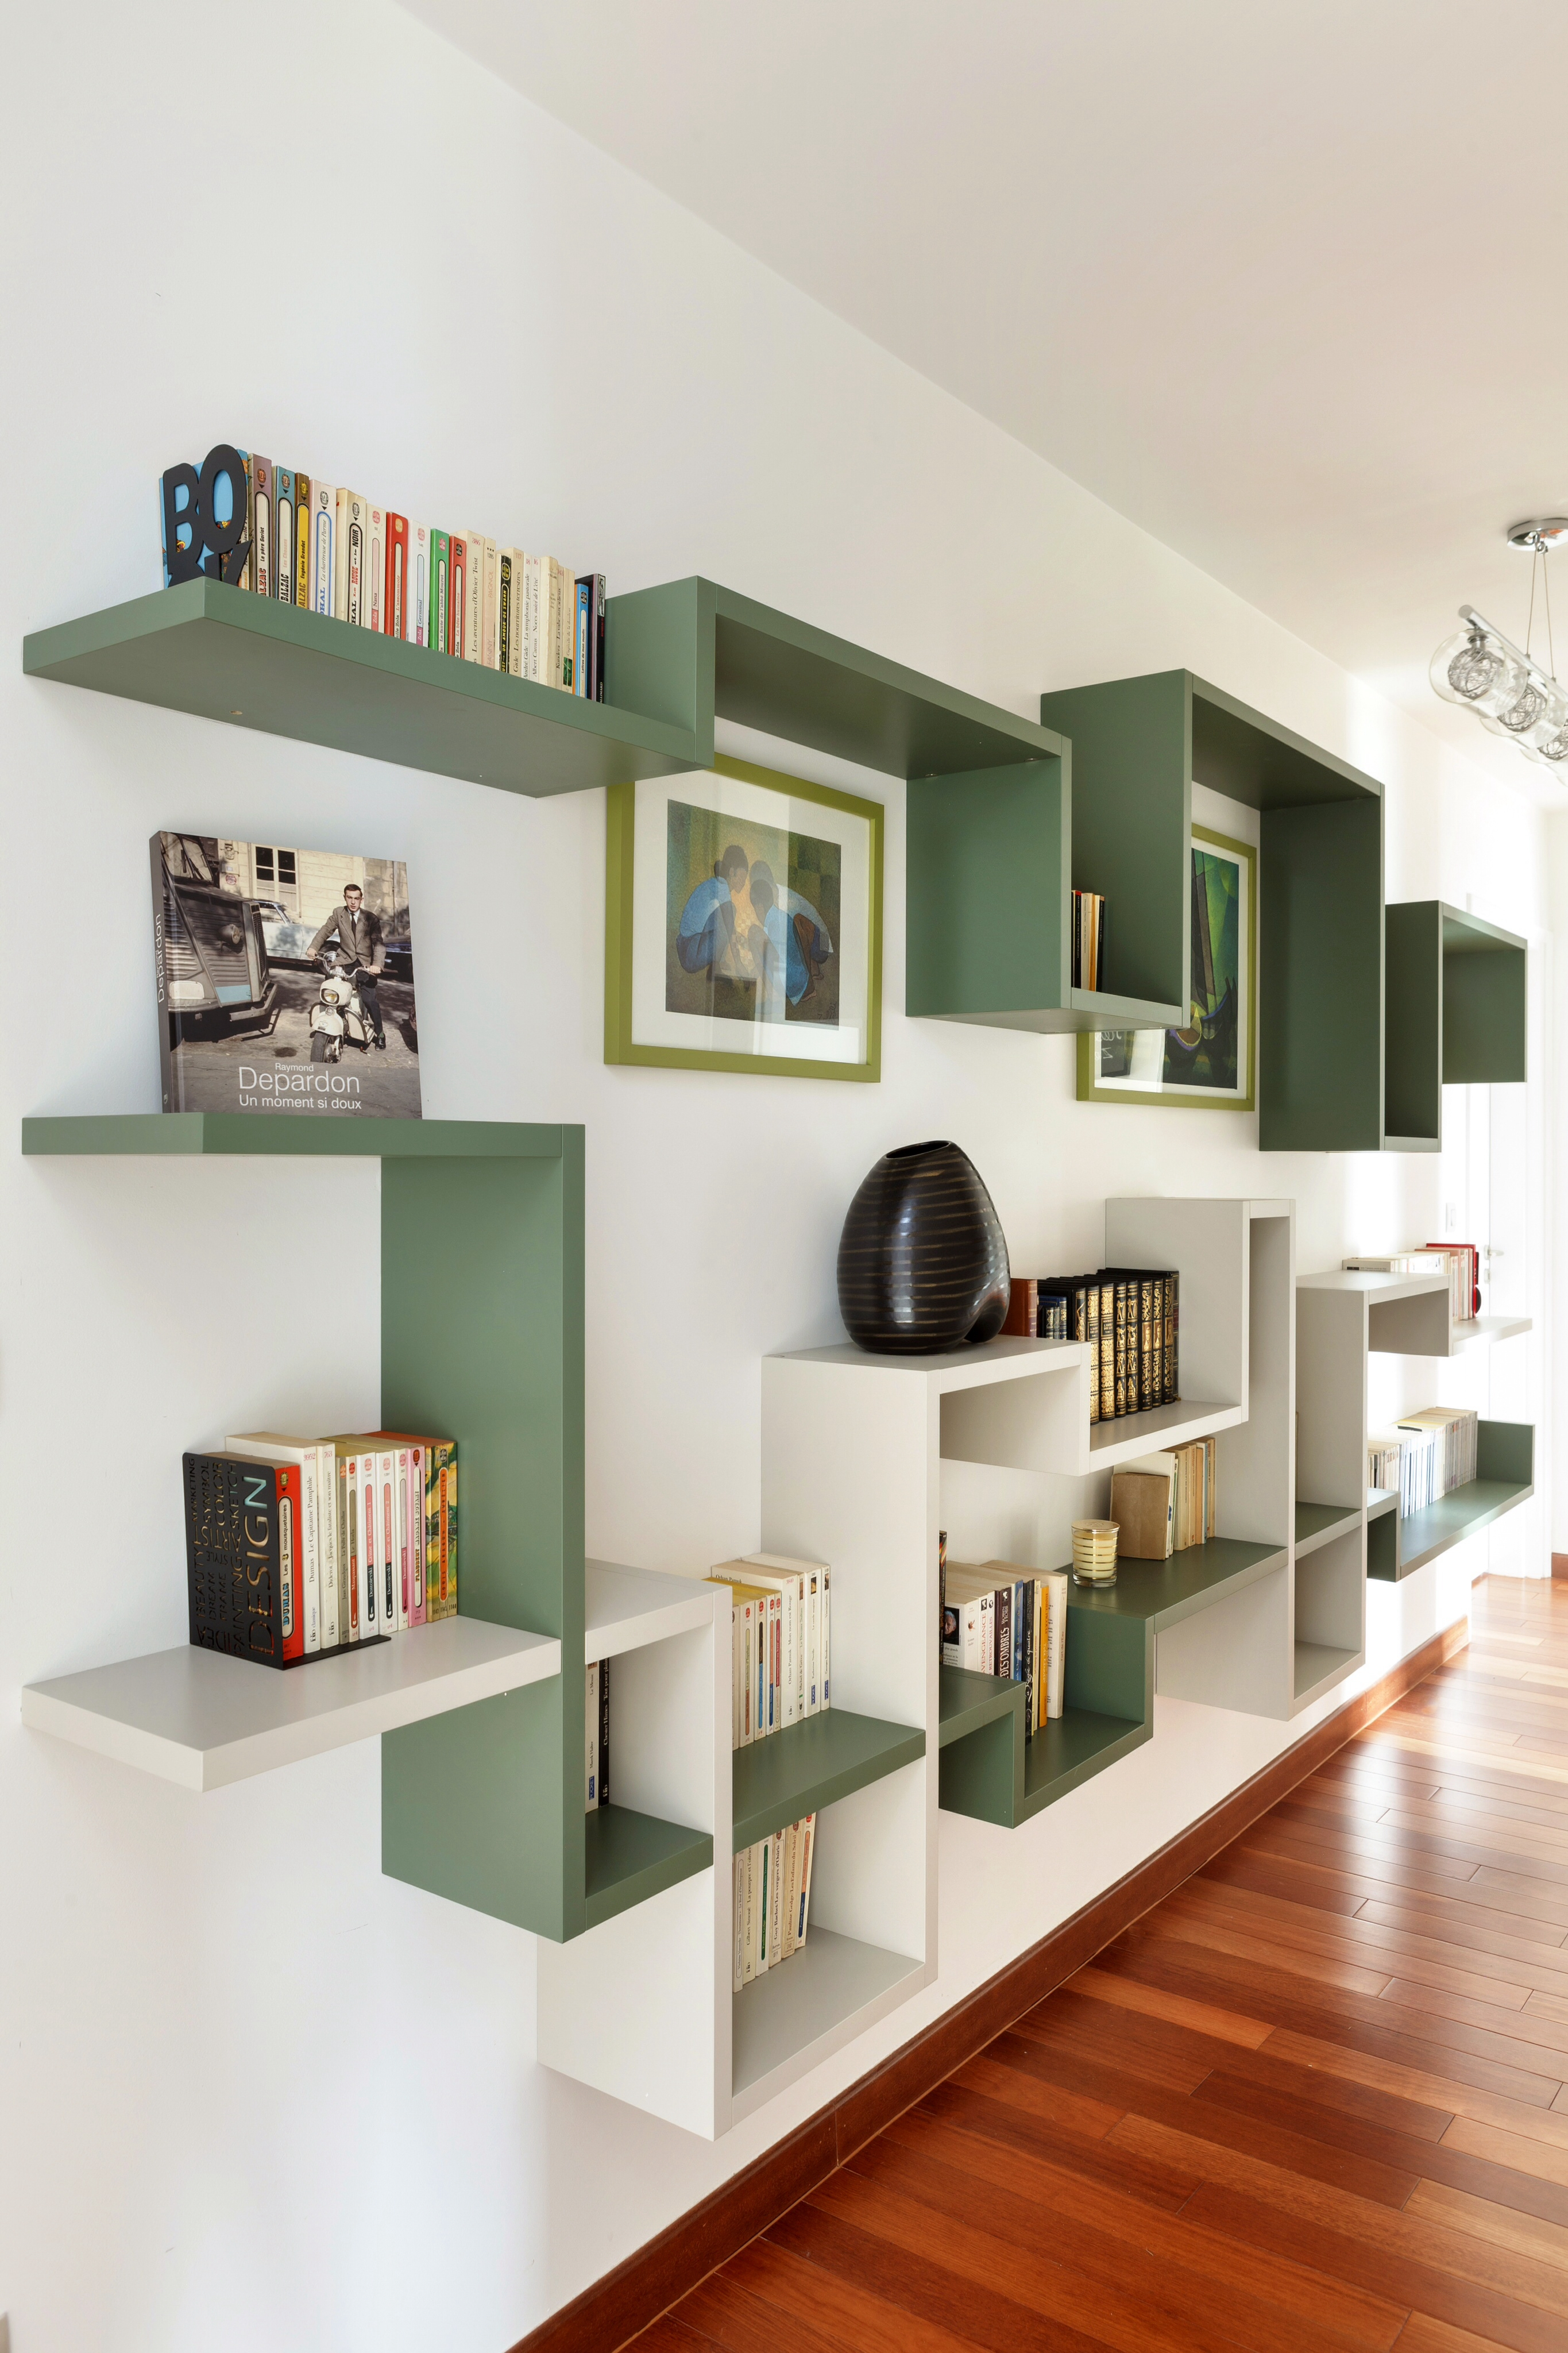 Decorative Plasterboard Partition Walls With Shelves In Modern Within Shelves On Plasterboard (View 13 of 15)